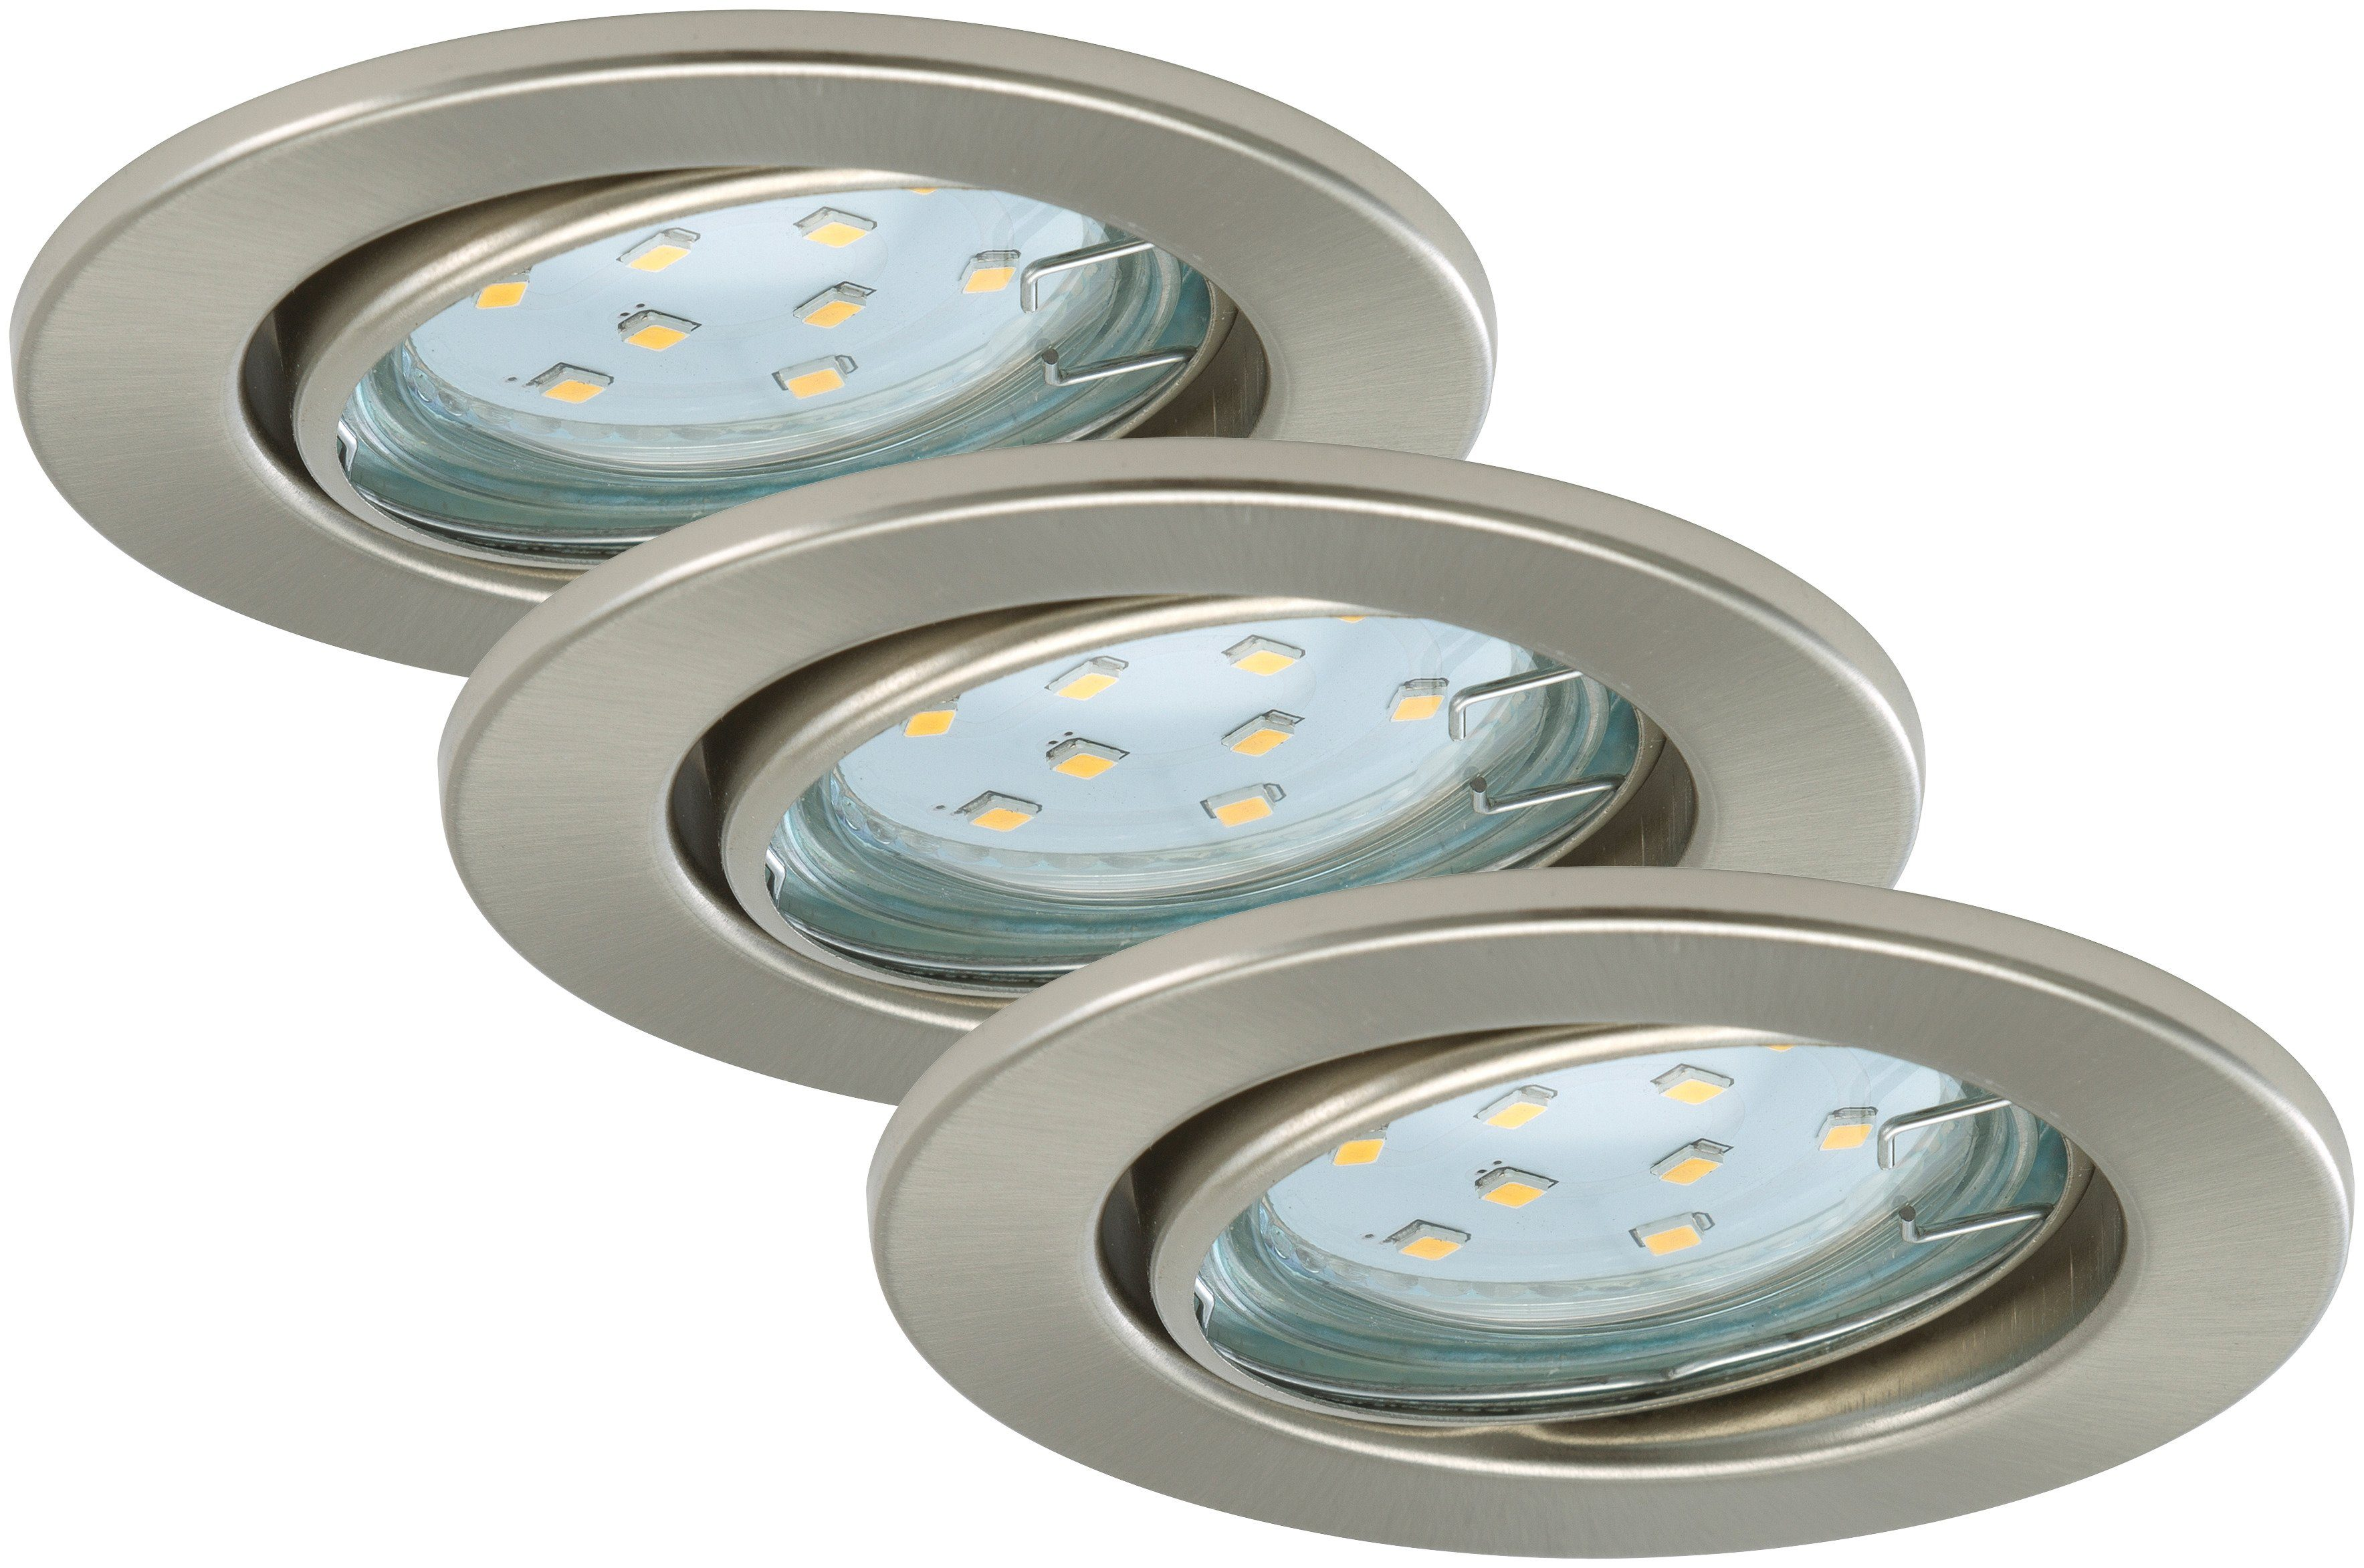 Briloner LED Einbauleuchten »Fit«, 3W, matt-nickel